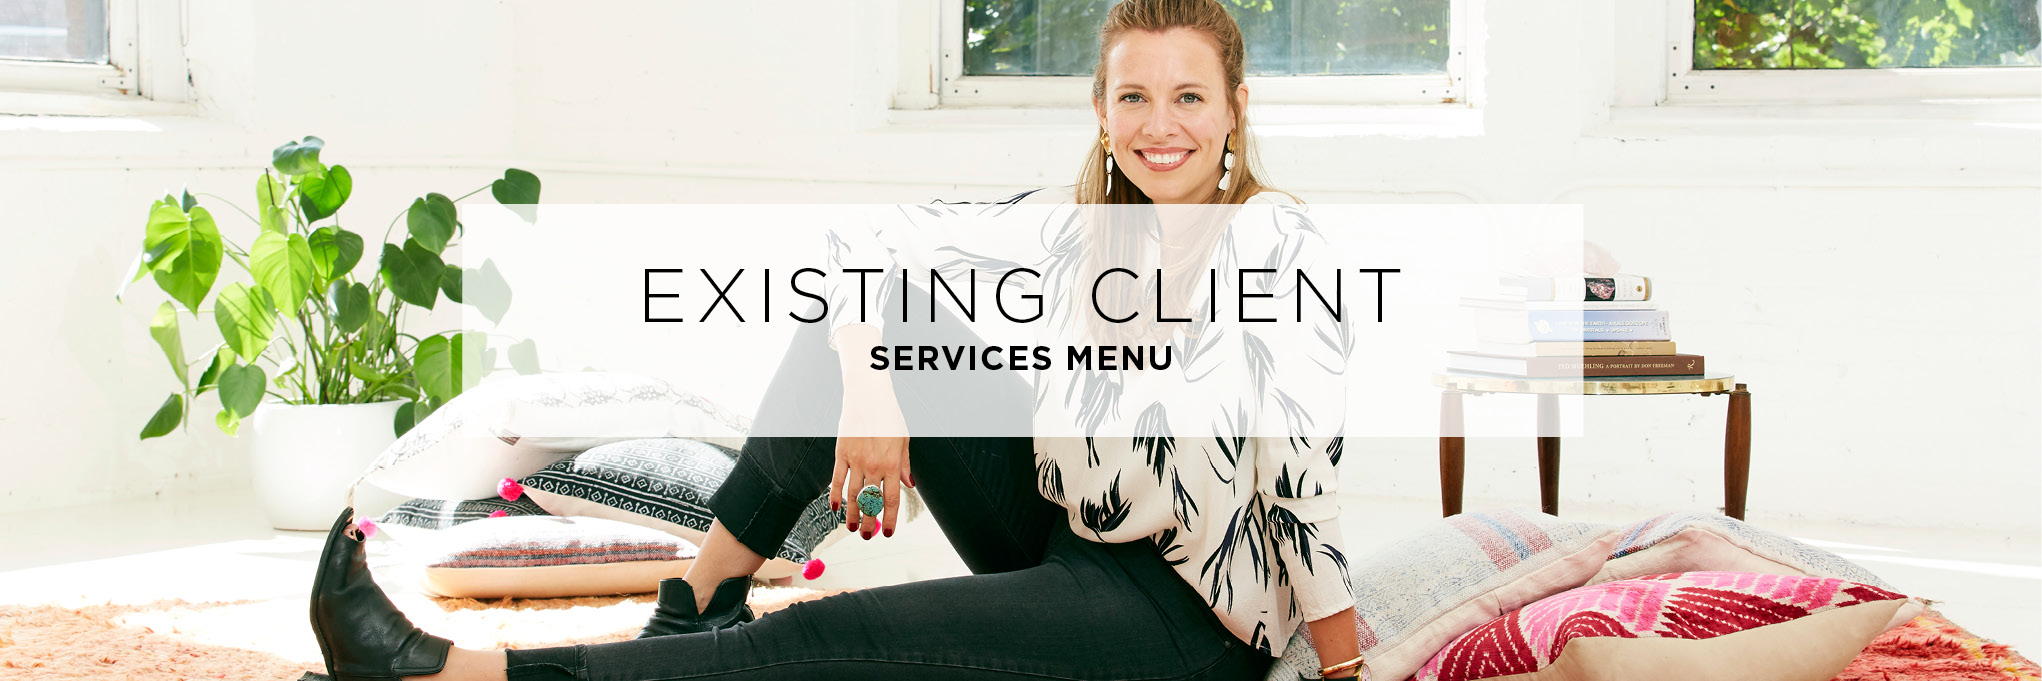 BANNER_EXISTING CLIENT